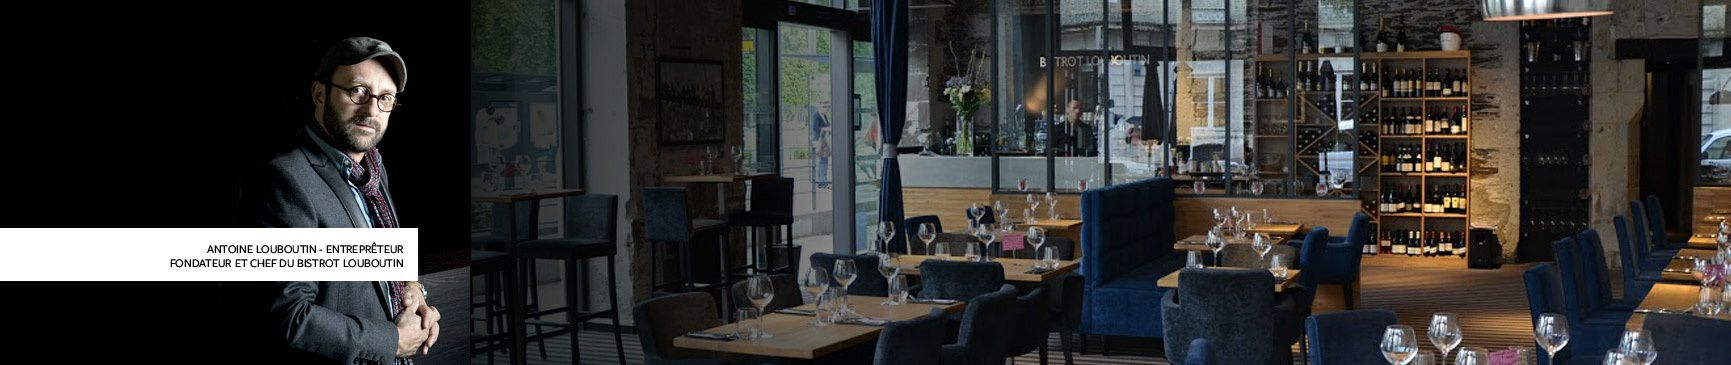 le bistrot antoine louboutin angers